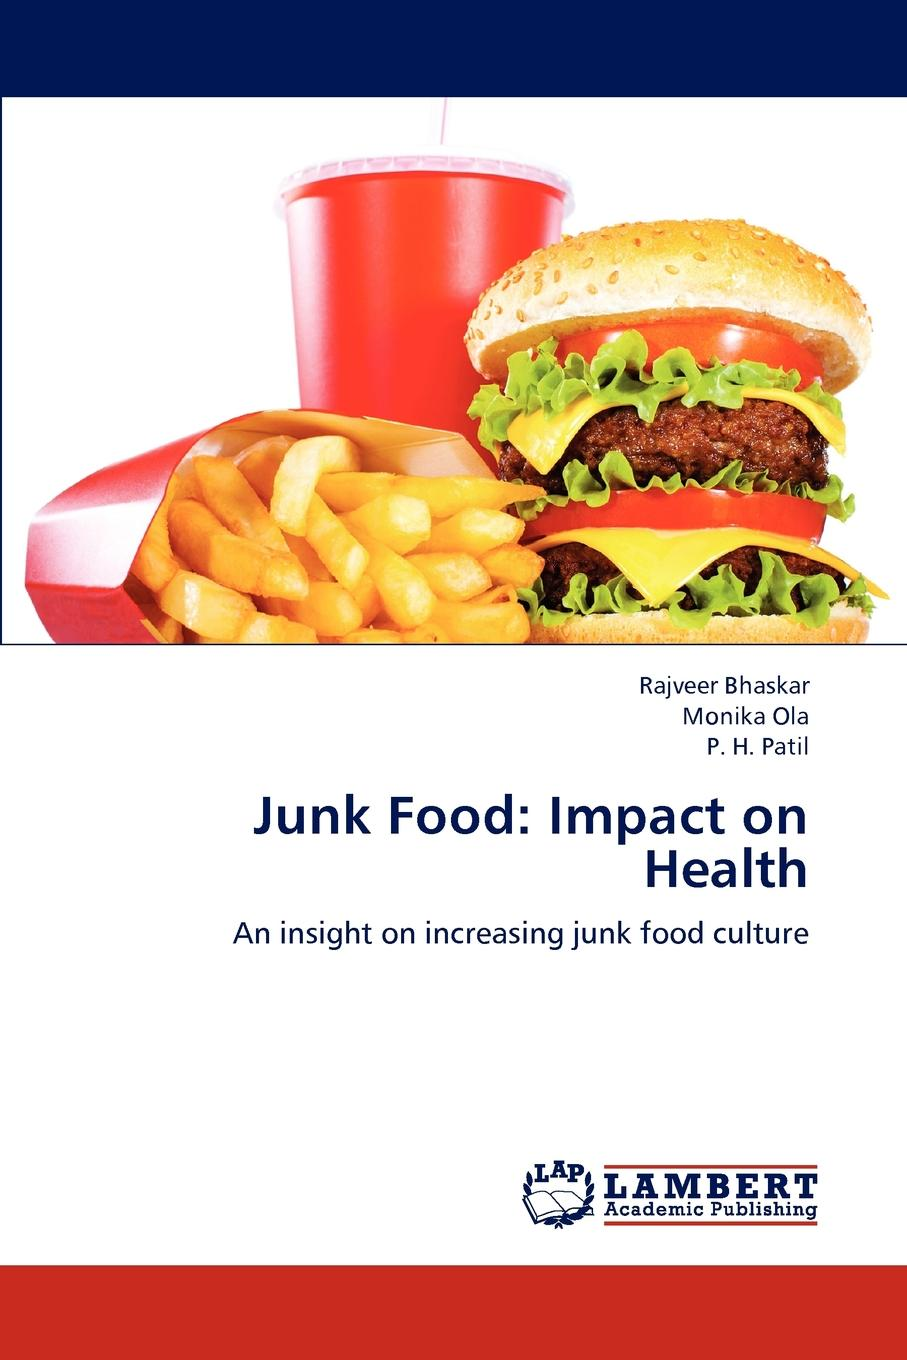 Bhaskar Rajveer, Ola Monika, Patil P. H. Junk Food. Impact on Health футболка классическая printio junk food gang